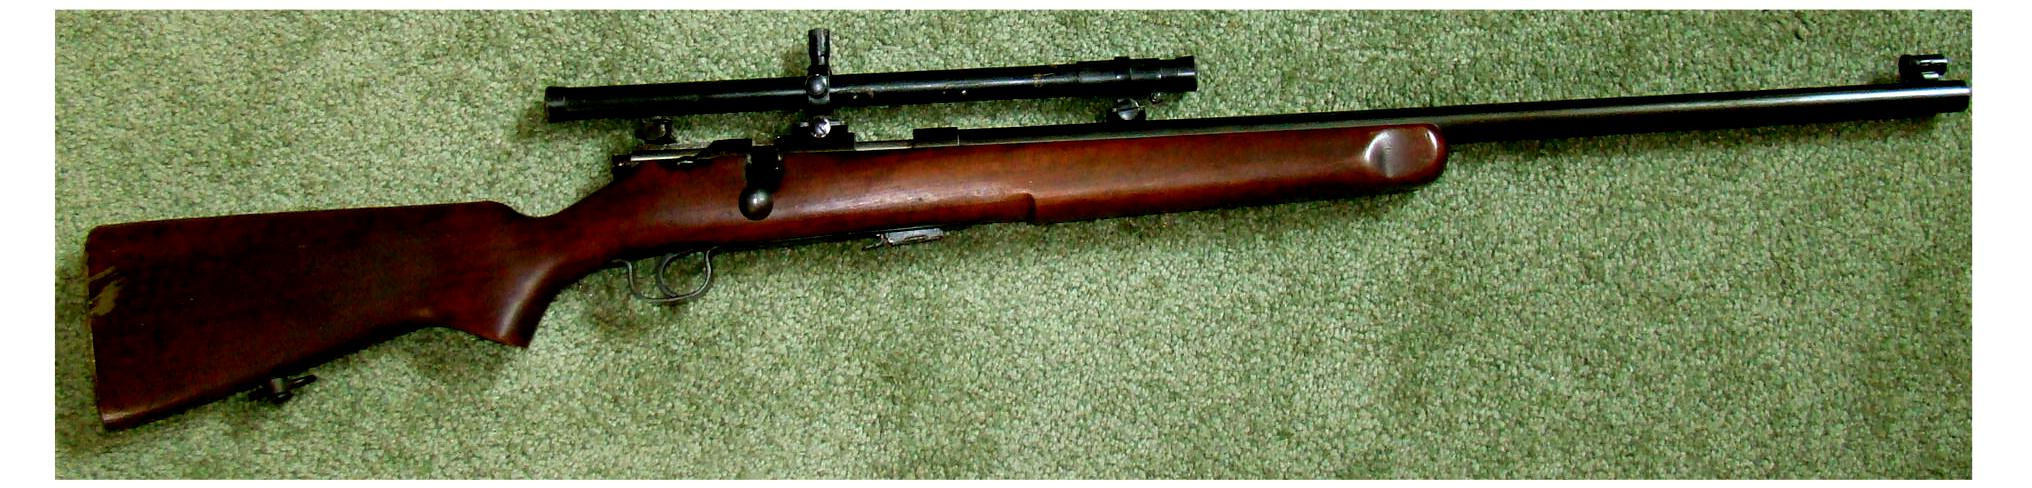 Click image for larger version.  Name:gun pic's (14).JPG Views:19 Size:201.5 KB ID:369427